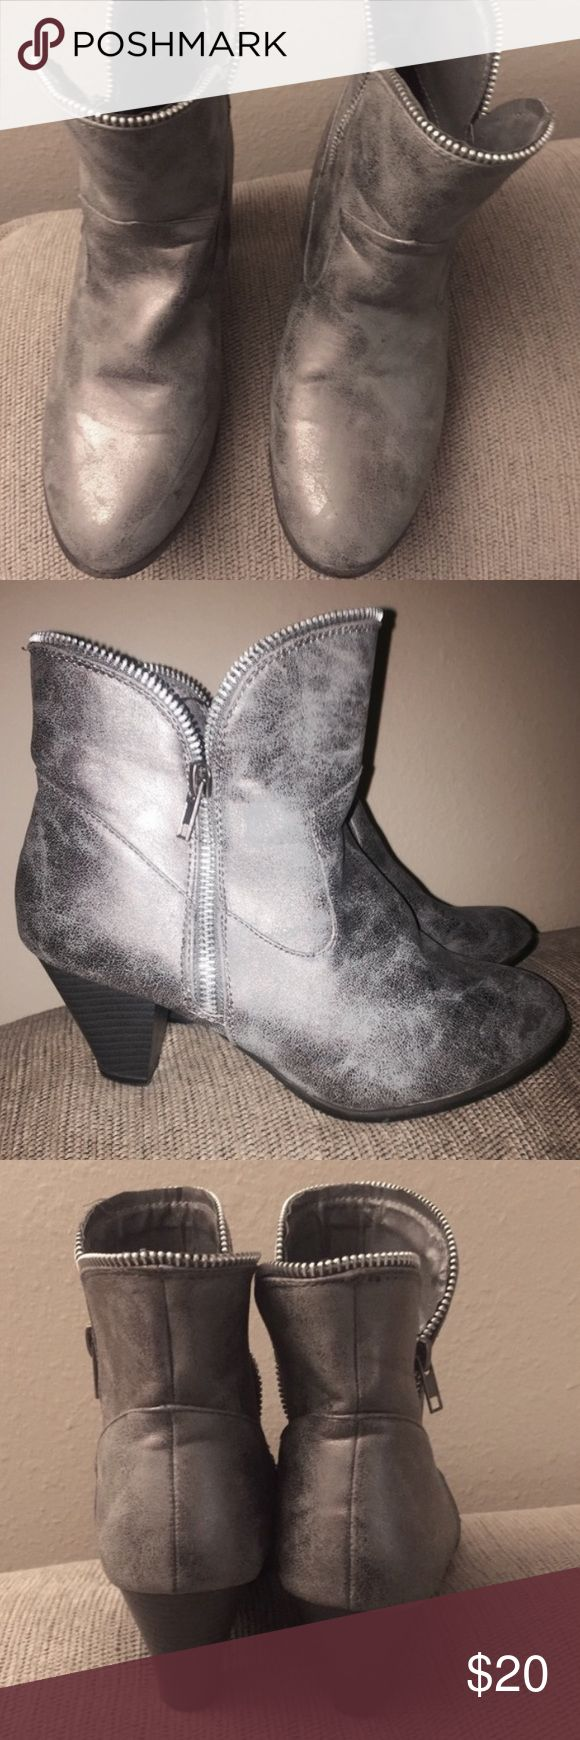 Silver Ankle Boots Gently worn; silver metallic flake finish. Zips up the side & goes well with almost anything! Dots Shoes Ankle Boots & Booties